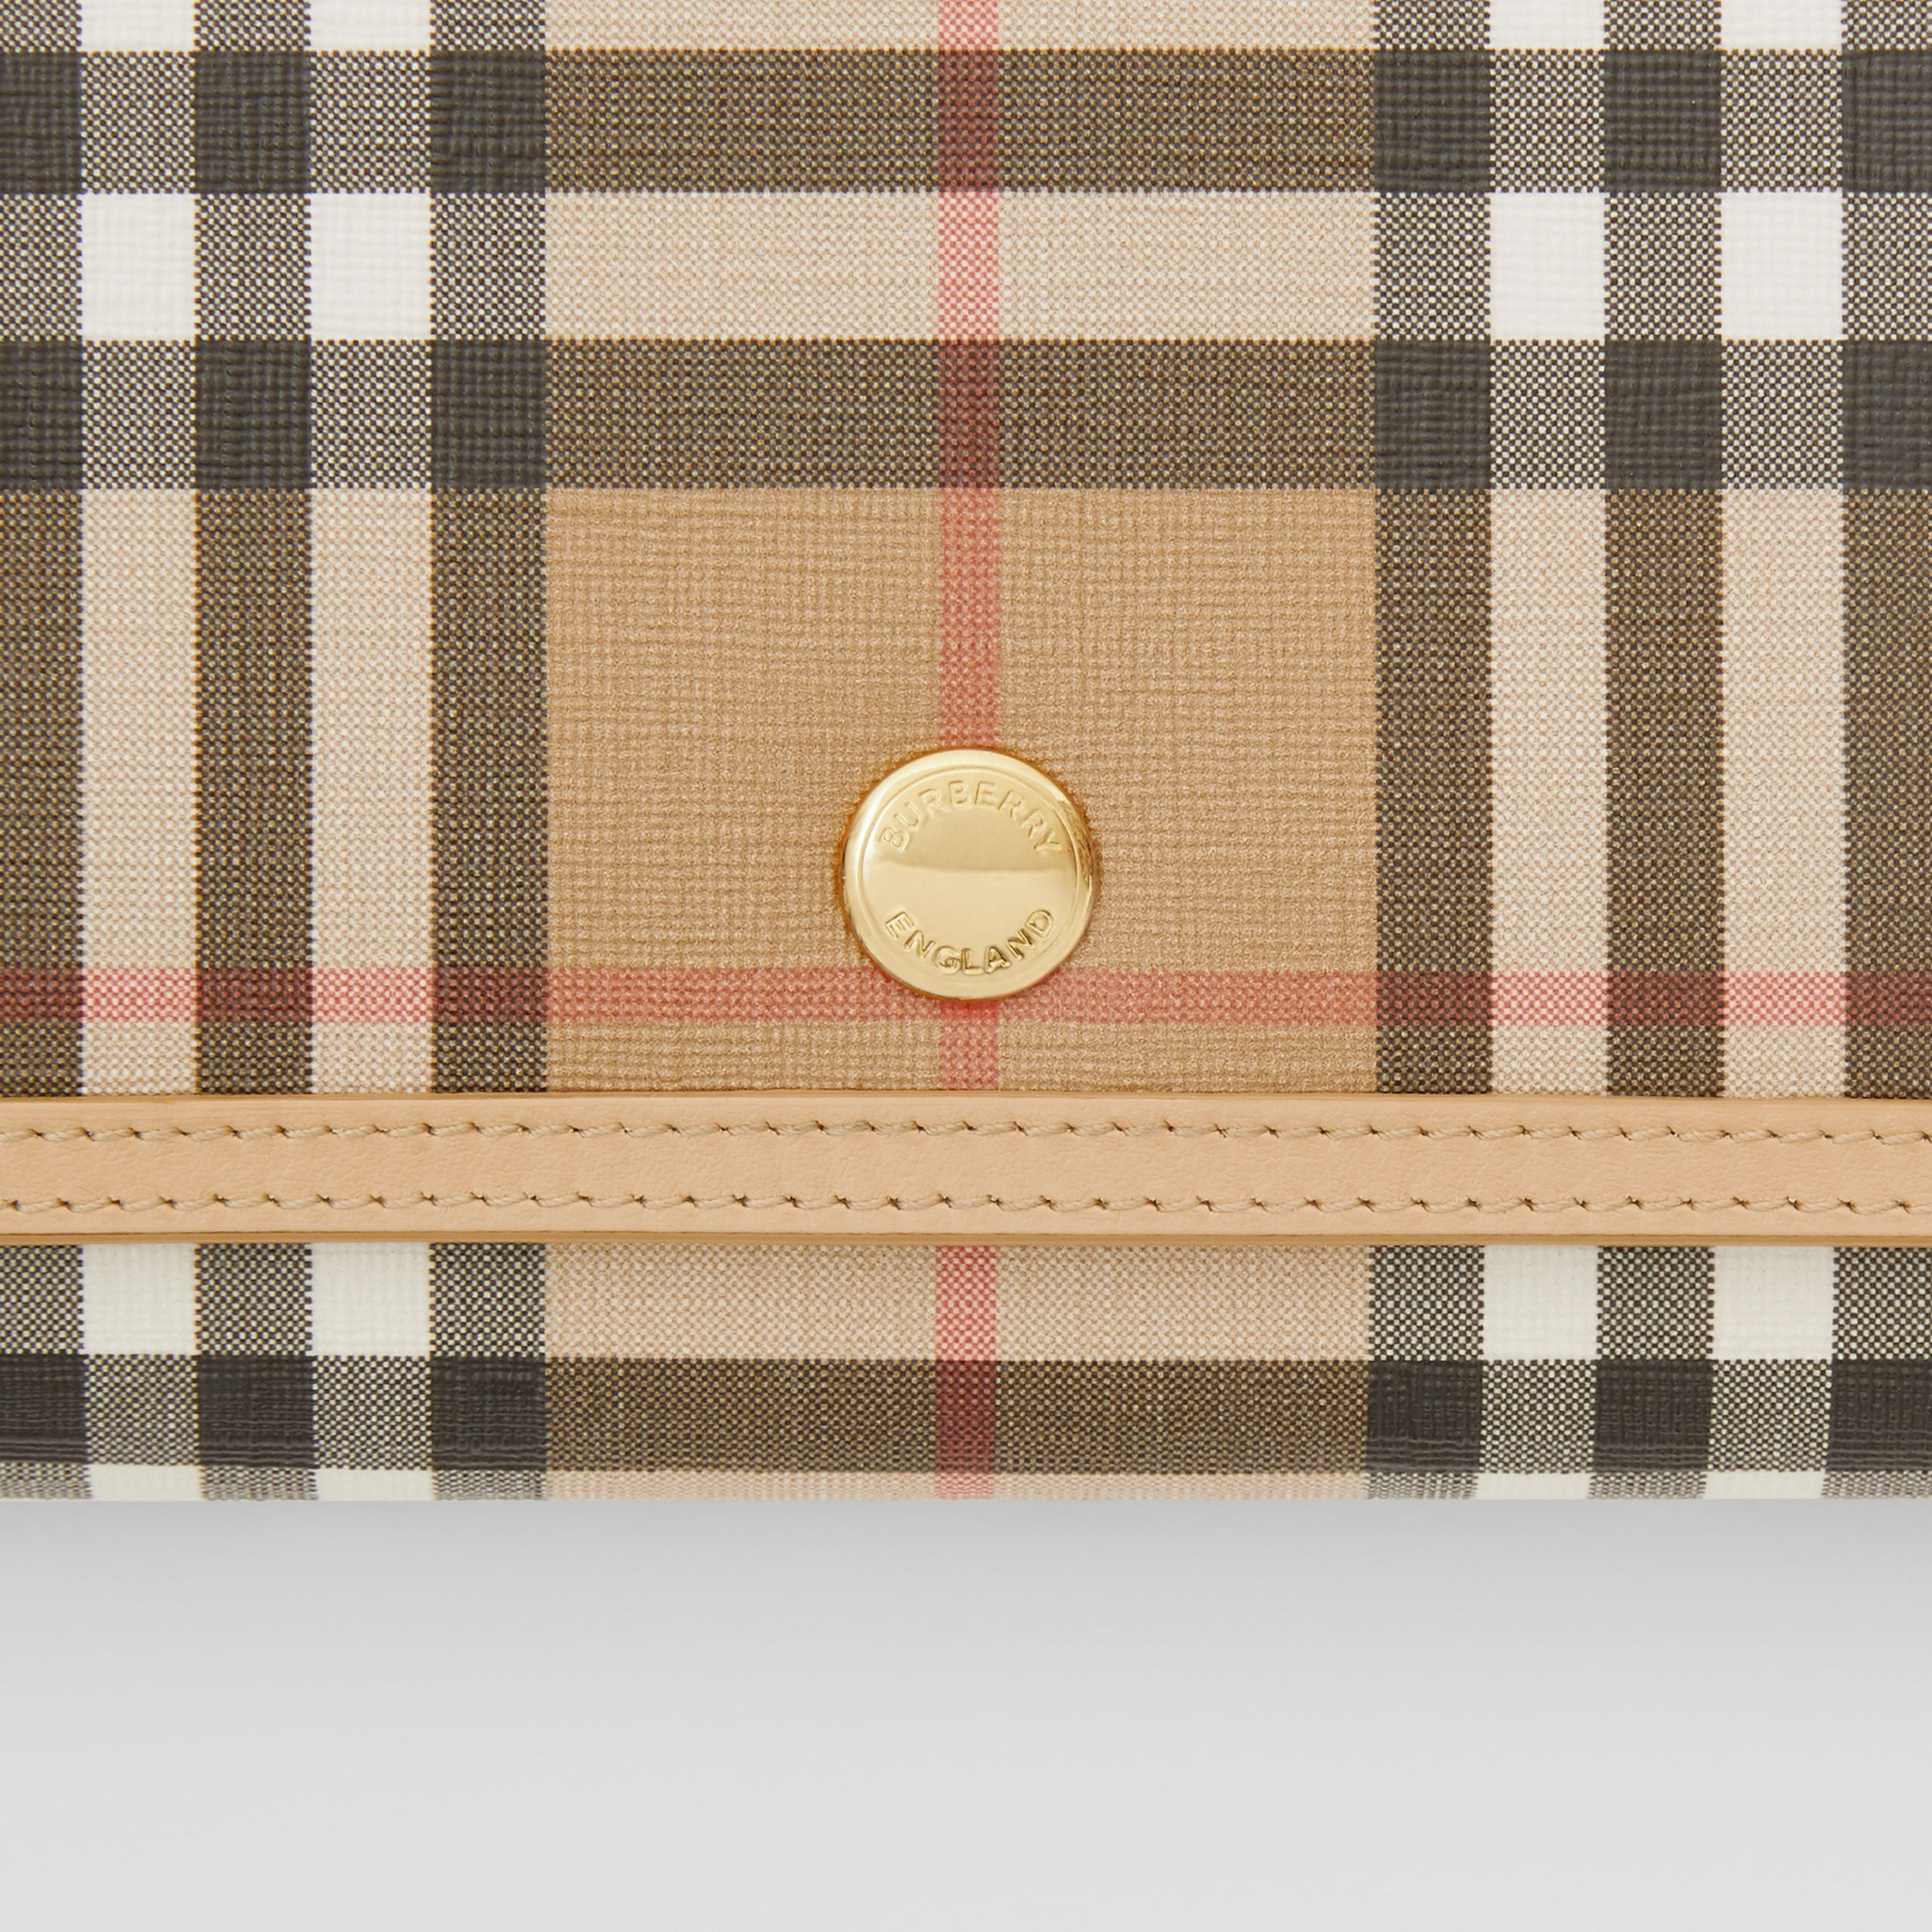 Vintage Check E-canvas Wallet with Detachable Strap in Beige - Women | Burberry United Kingdom - 2